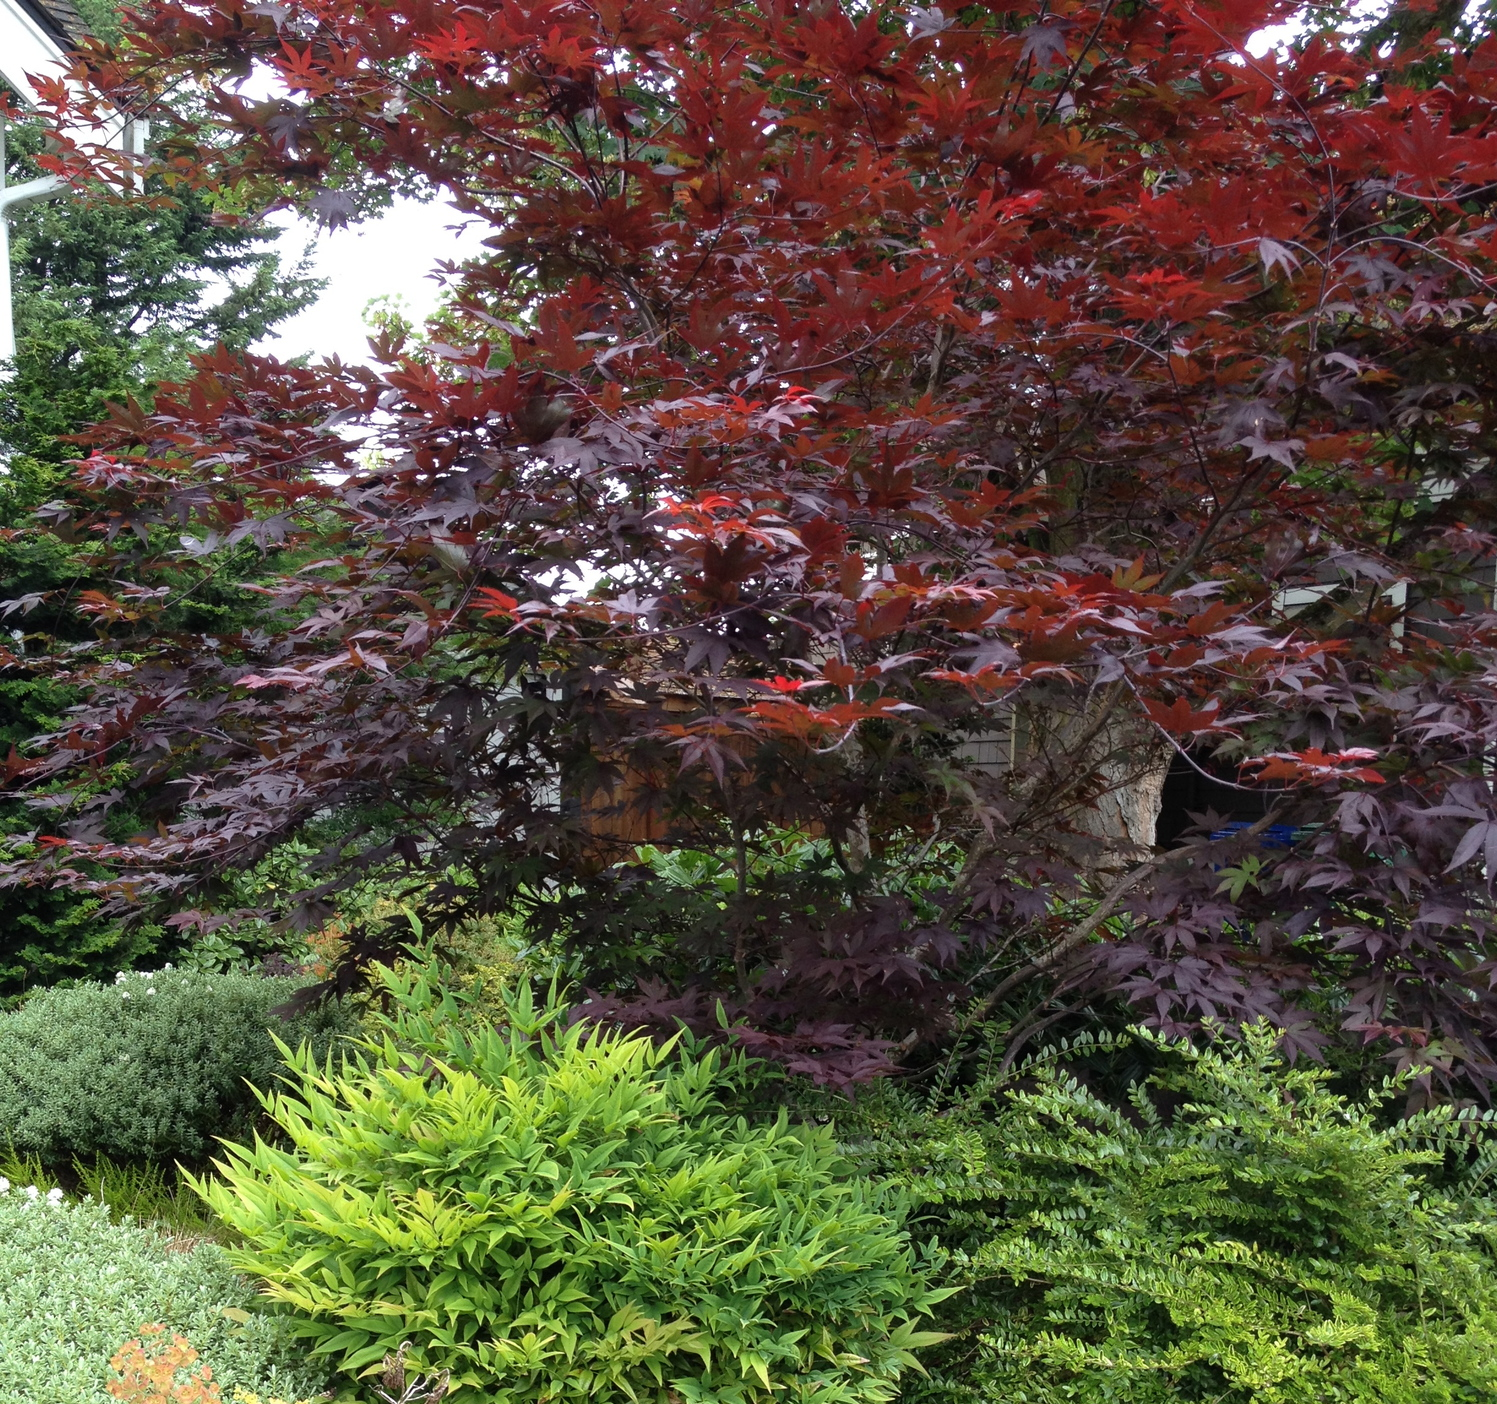 Acer palmatum 'Red Emperor I' is deep burgundy rich and warm.